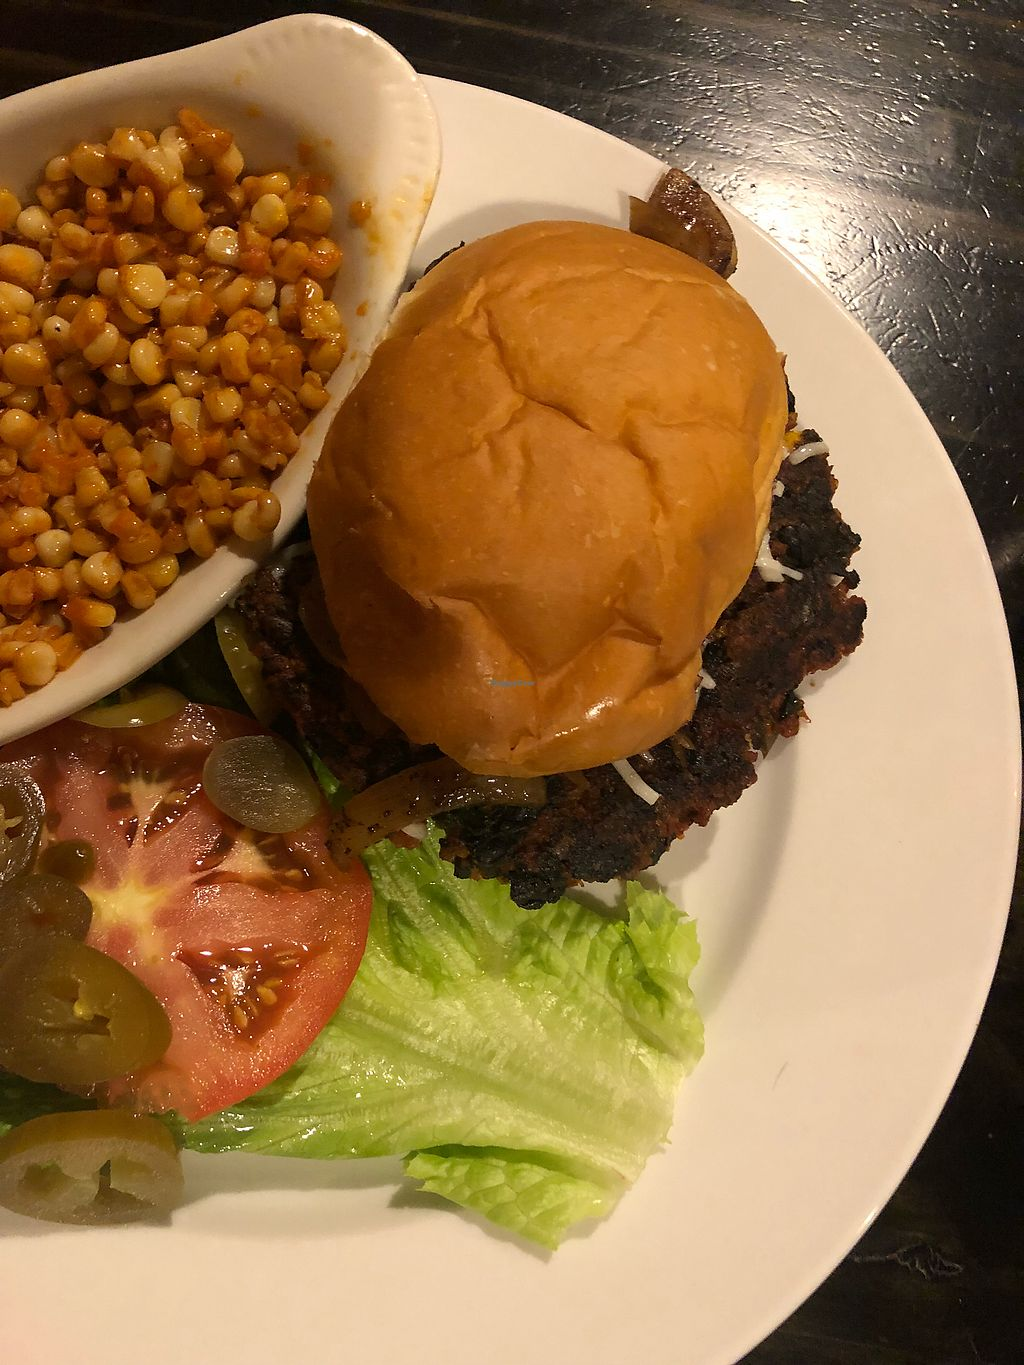 """Photo of Bite  by <a href=""""/members/profile/Jaclynch_eats"""">Jaclynch_eats</a> <br/>Vegan burger with special side of the day <br/> February 17, 2018  - <a href='/contact/abuse/image/45098/360376'>Report</a>"""